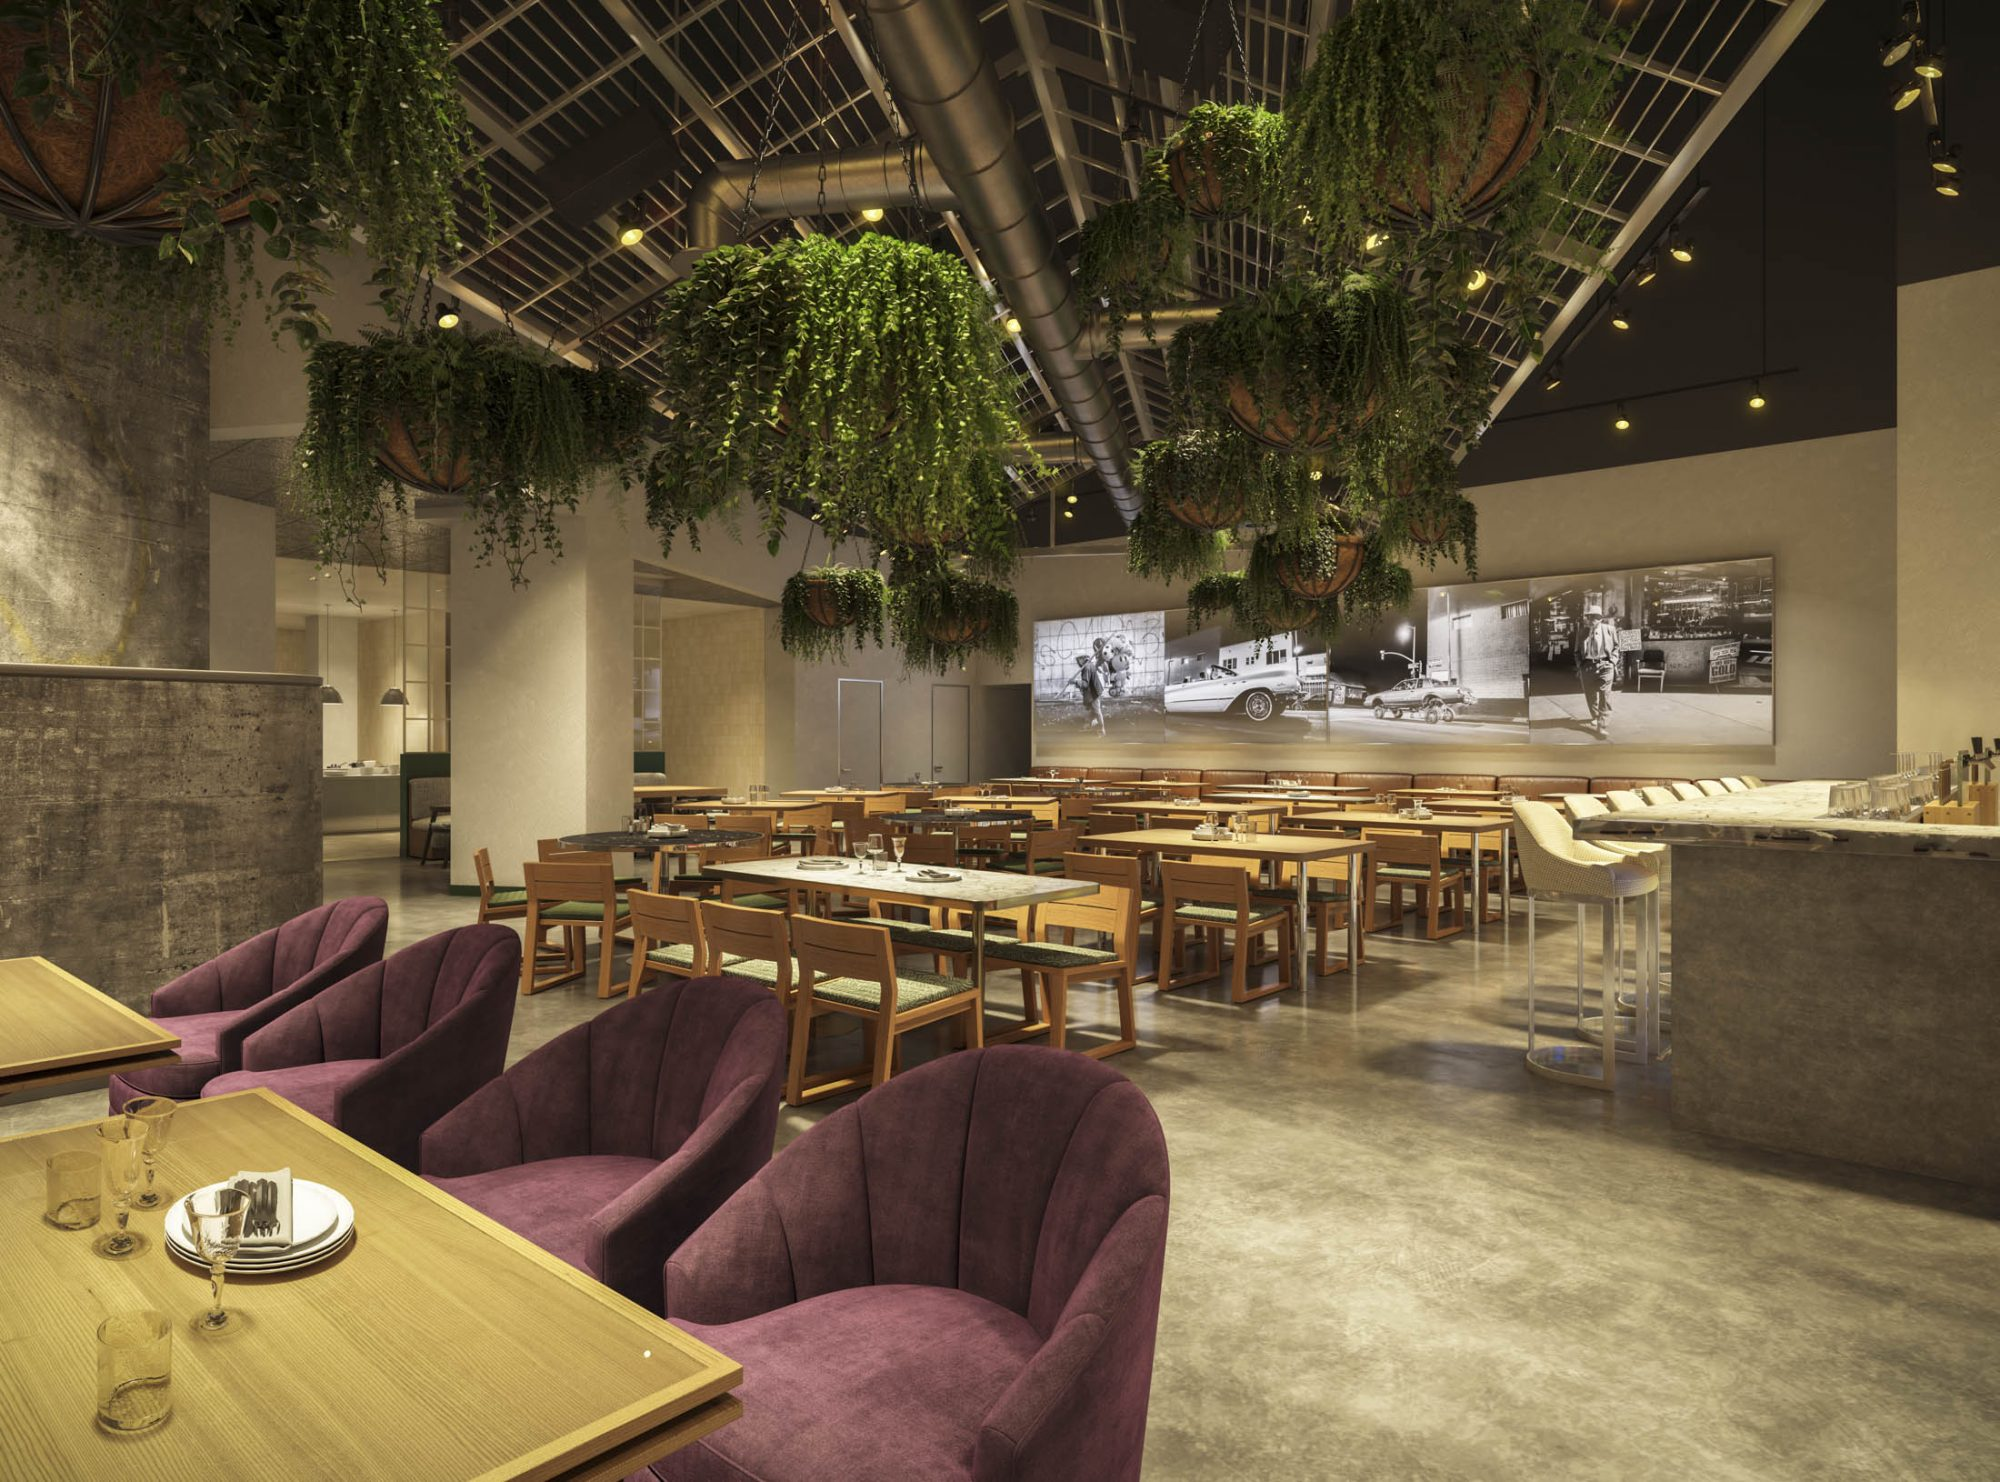 A rendering of Roy Choi's soon-to-open Vegas restaurant, Best Friend.